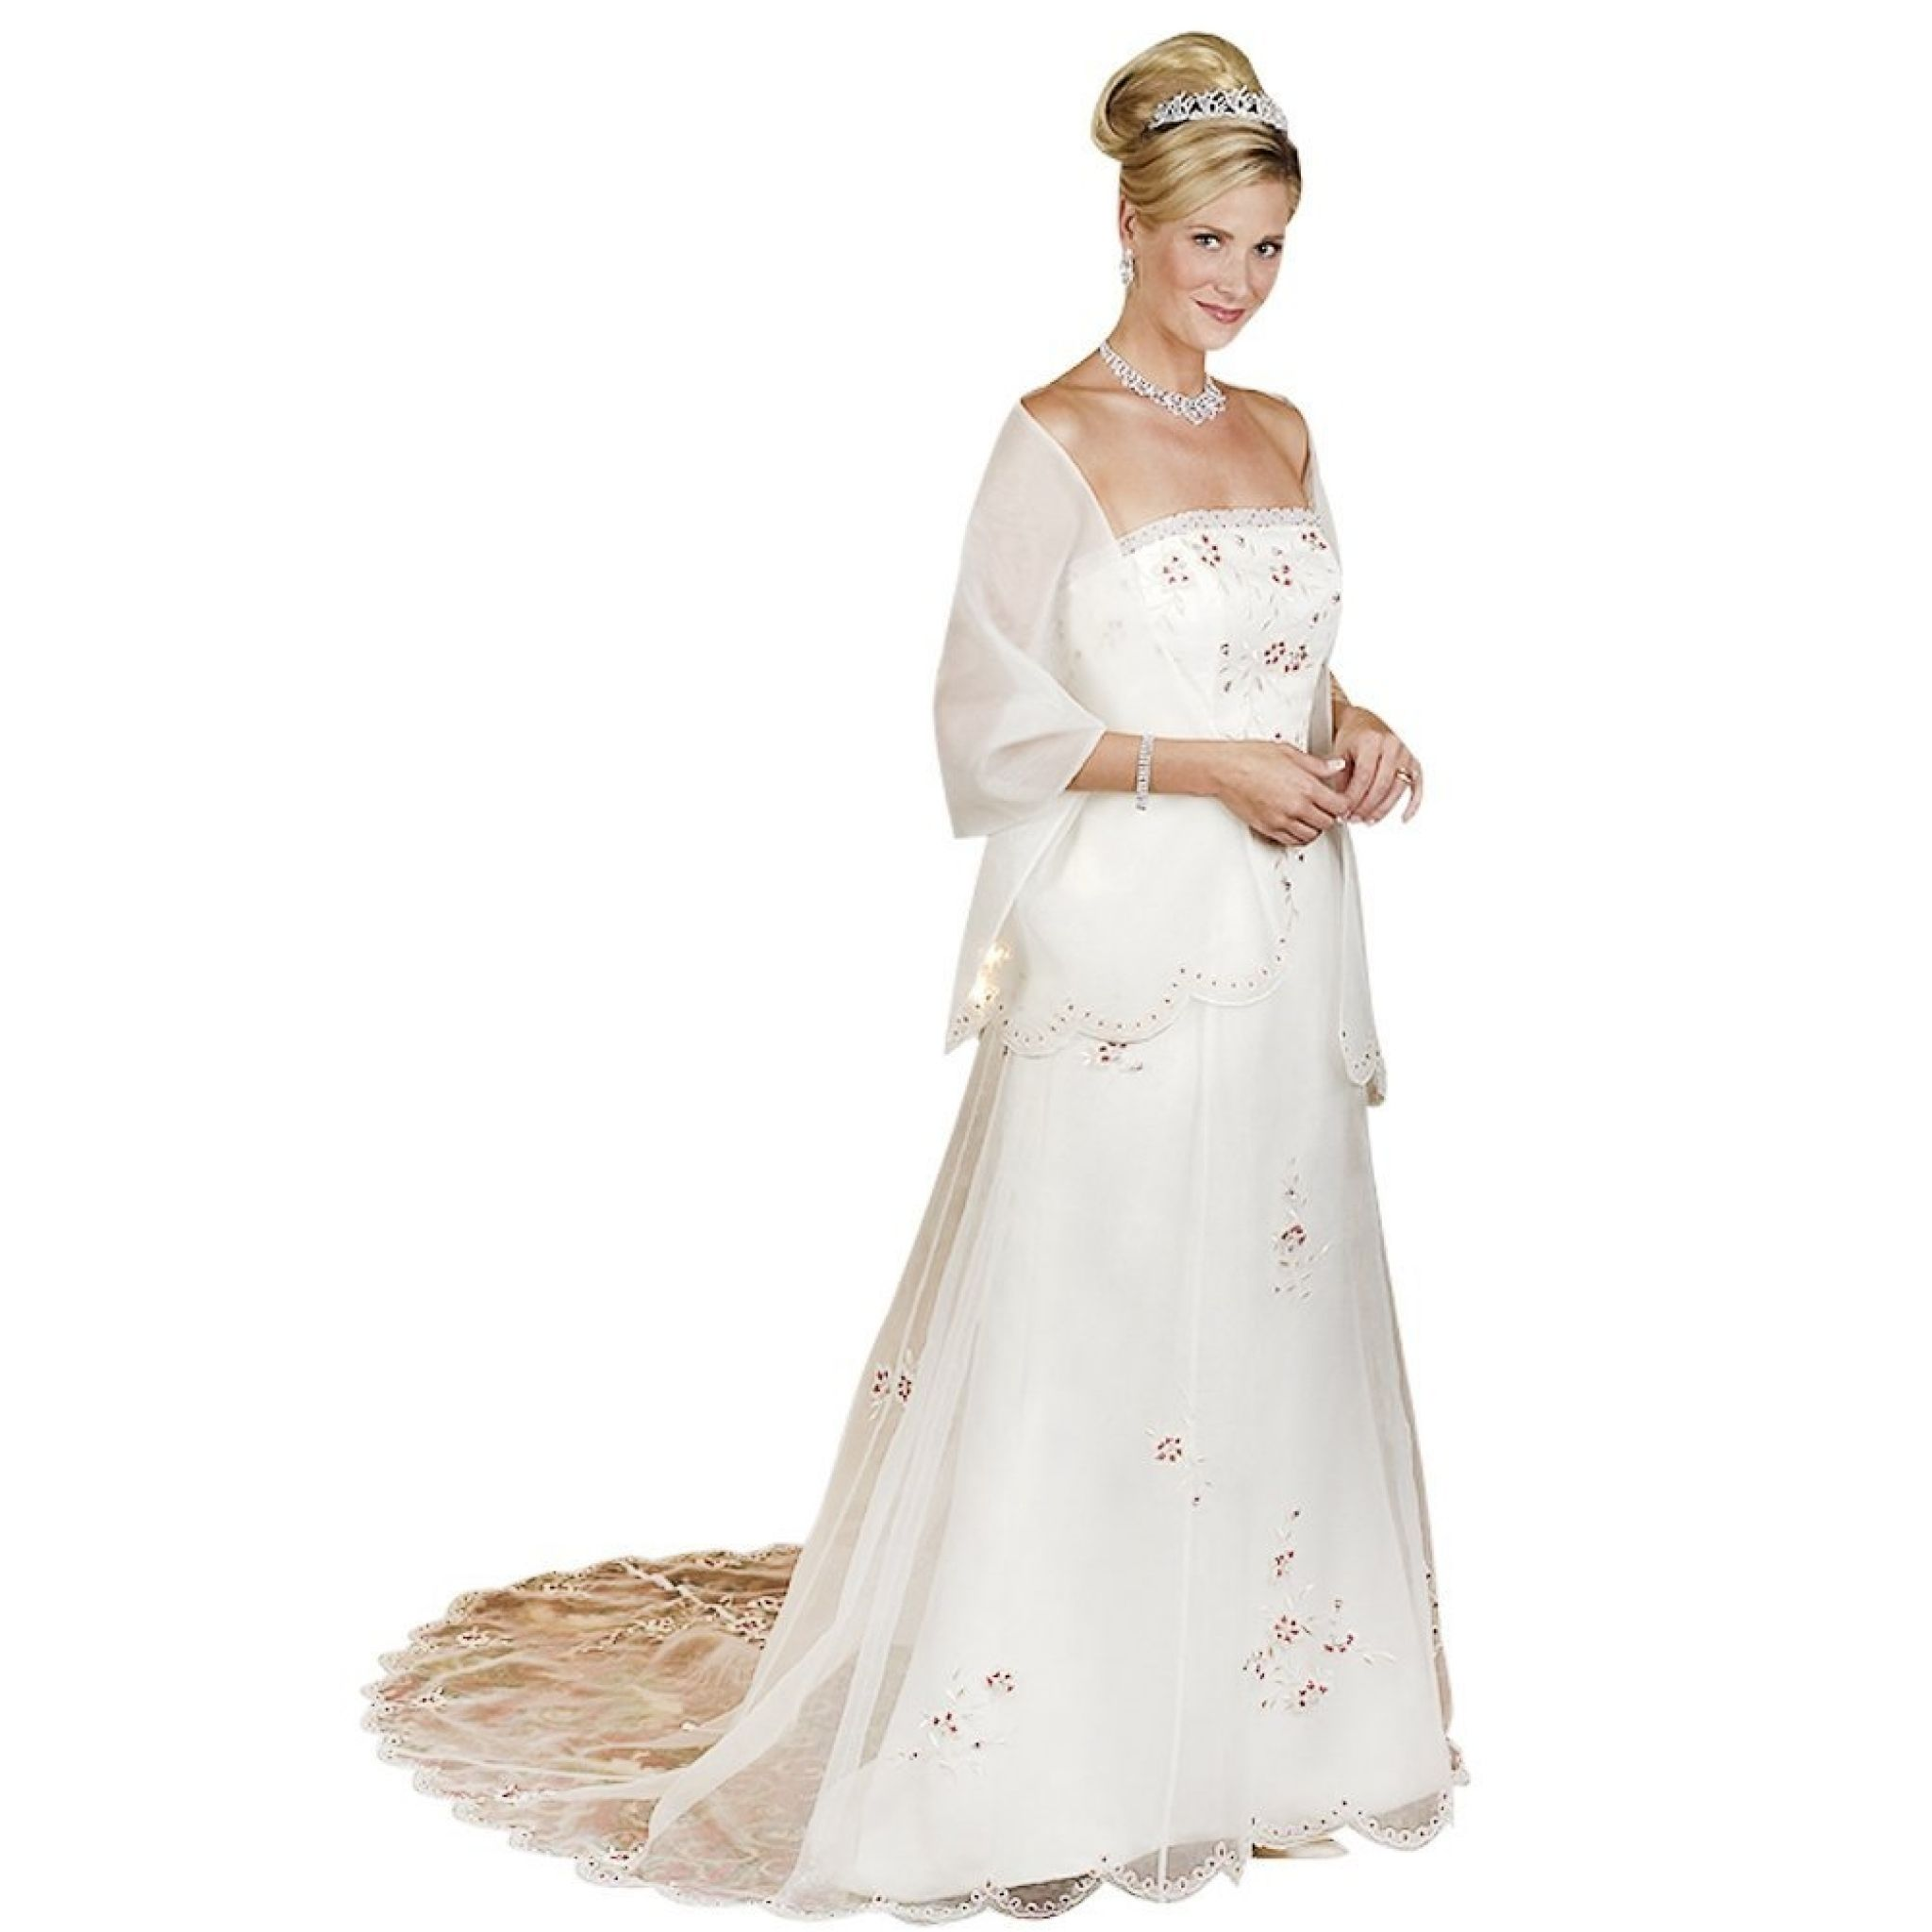 Wedding Dresses For 50 Year Old Brides Cute Dresses For A Wedding Wedding Outfits For Women Wedding Guest Dress Wedding Dresses